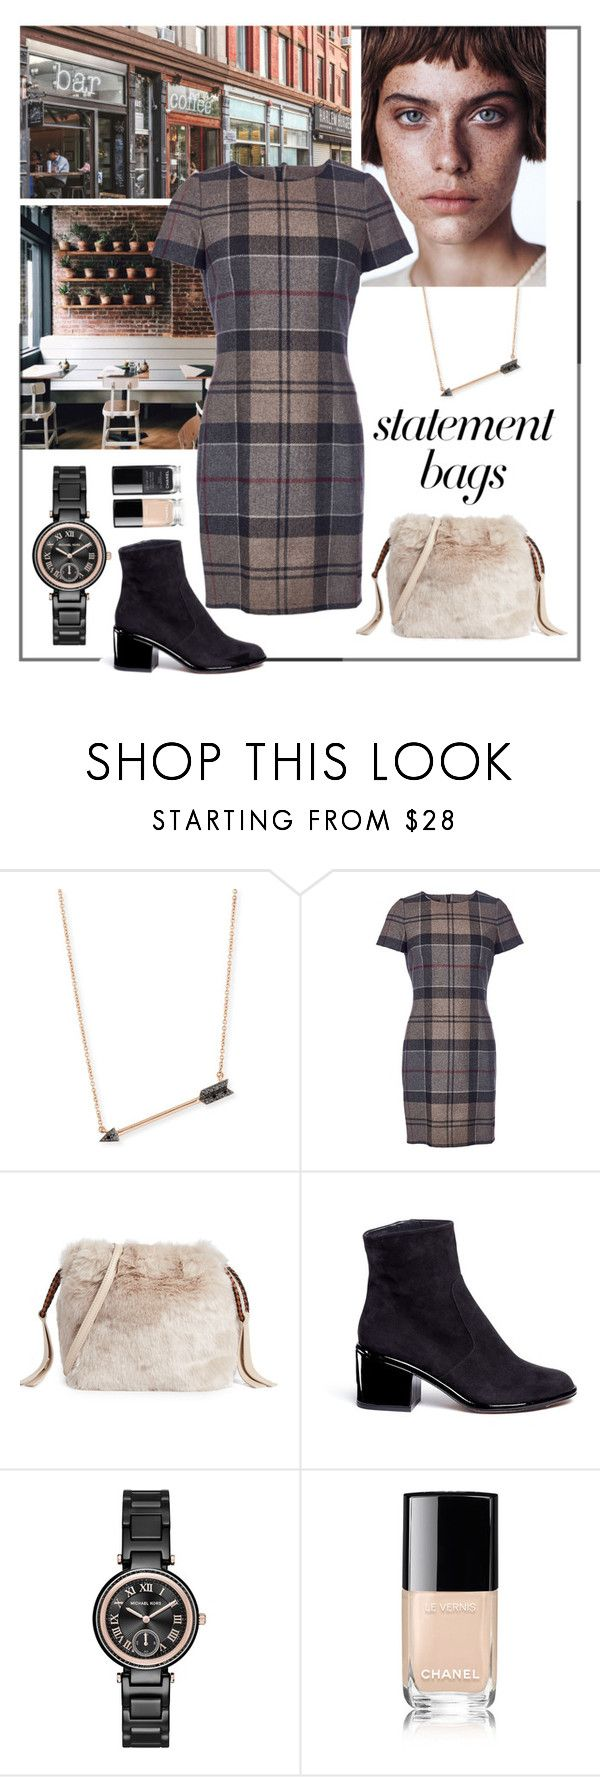 """""""Statement bags"""" by iojeni ❤ liked on Polyvore featuring Sydney Evan, Coffee Shop, Barbour, Furla, Robert Clergerie, Michael Kors and Chanel"""